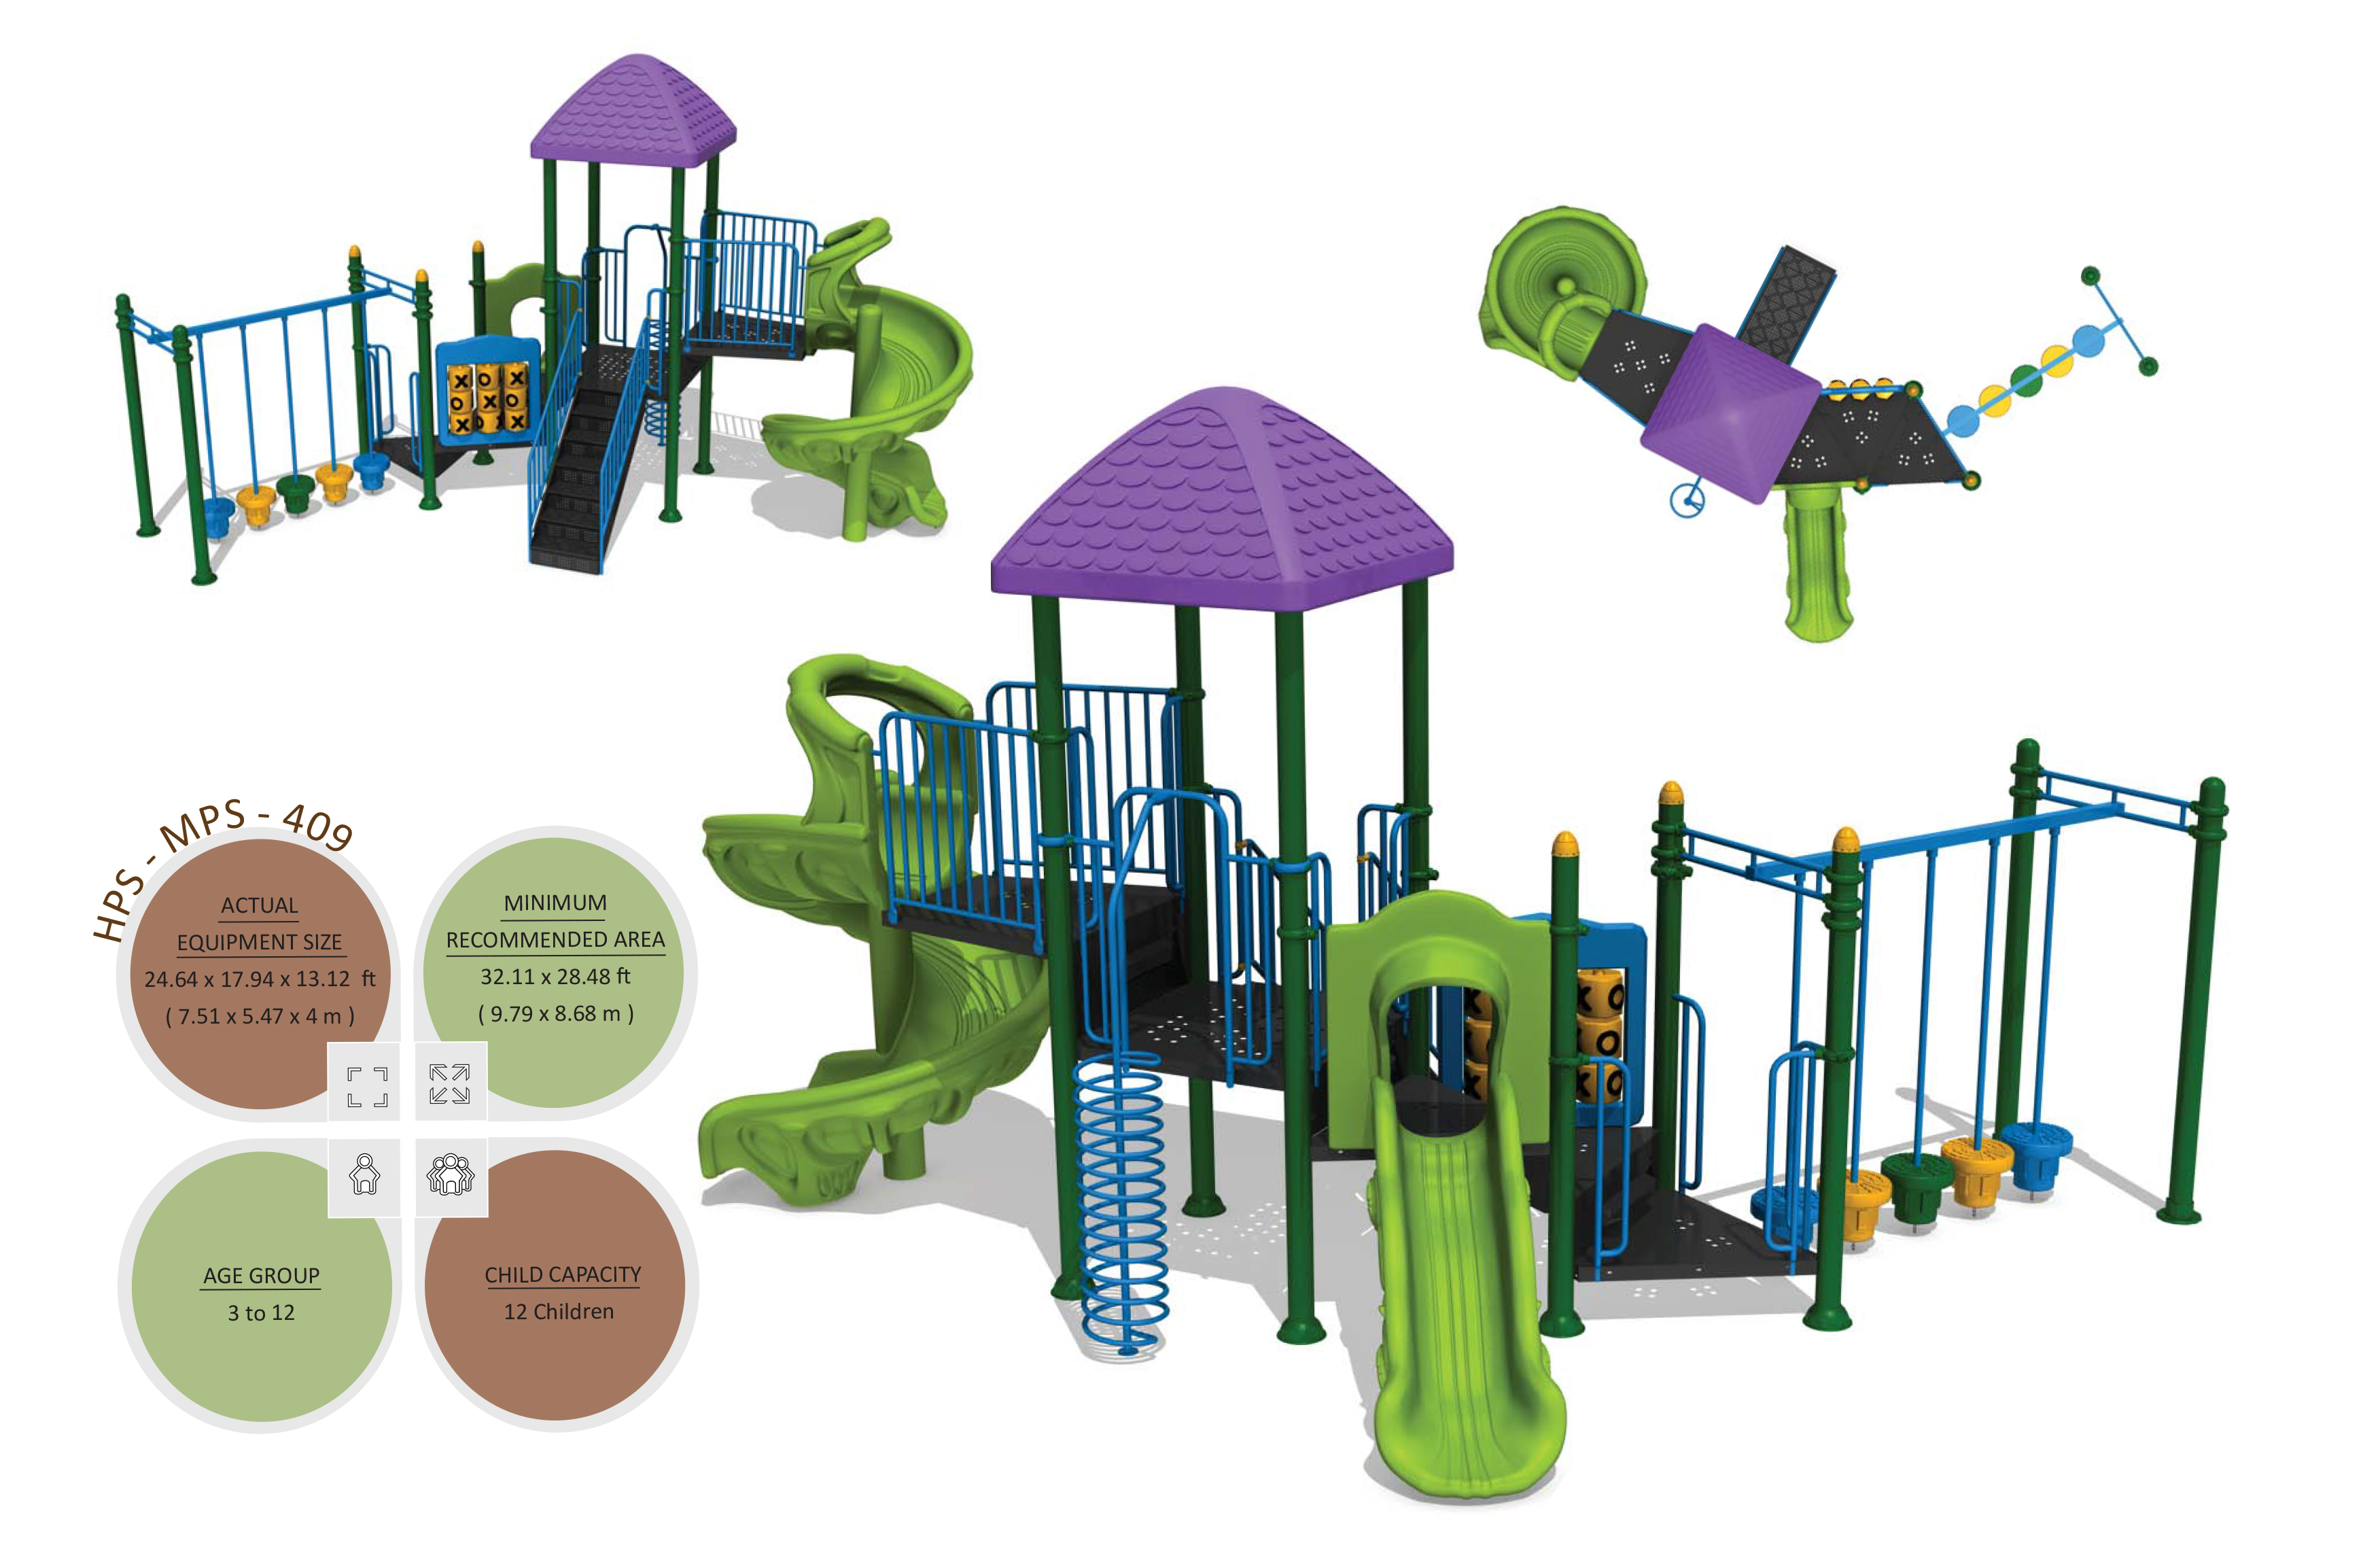 Mps 409 Multiplay Systems Hugoplay Com